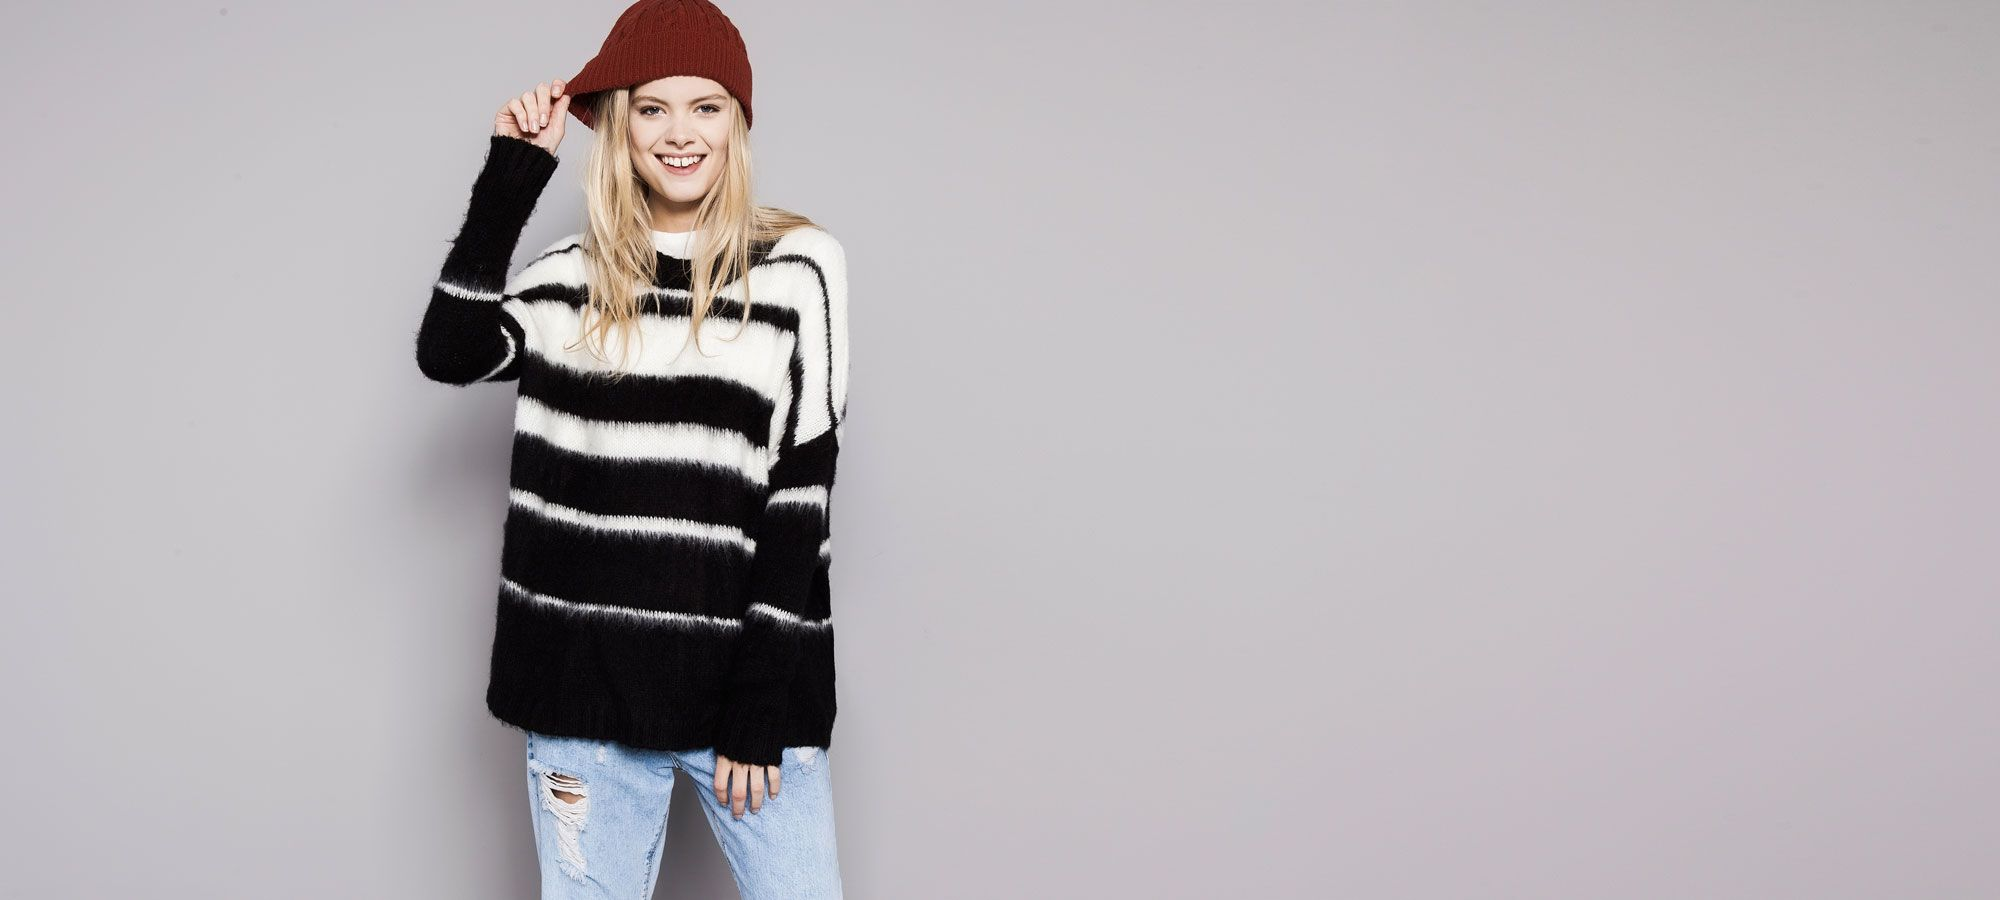 25a3866734 Our 2017 Autumn knitwear collection for women at PULL BEAR. Try our cropped  jumpers